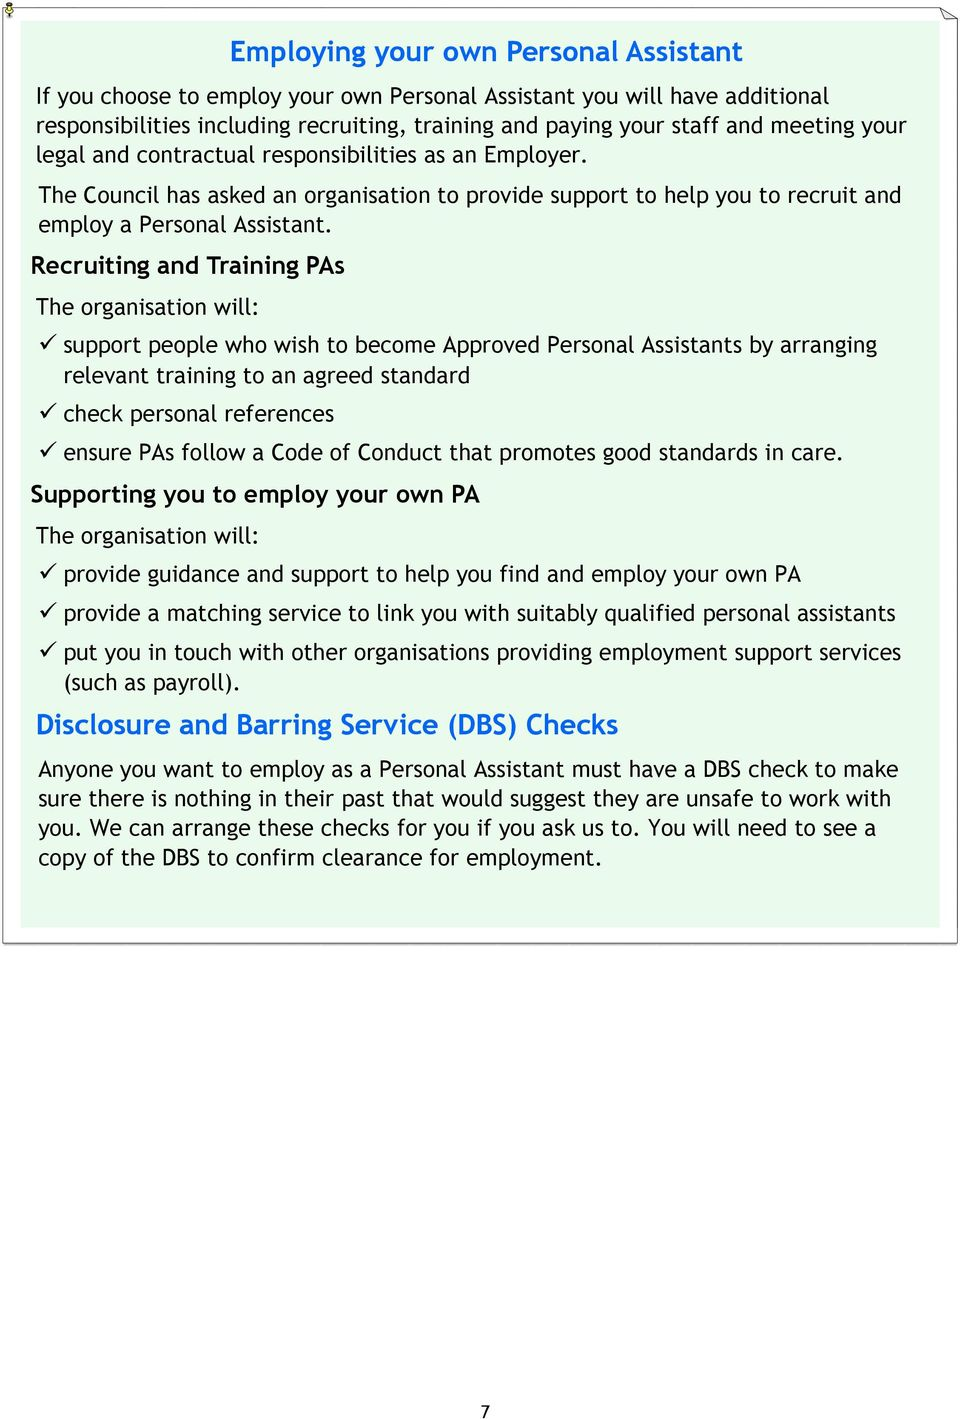 Recruiting and Training PAs The organisation will: support people who wish to become Approved Personal Assistants by arranging relevant training to an agreed standard check personal references ensure